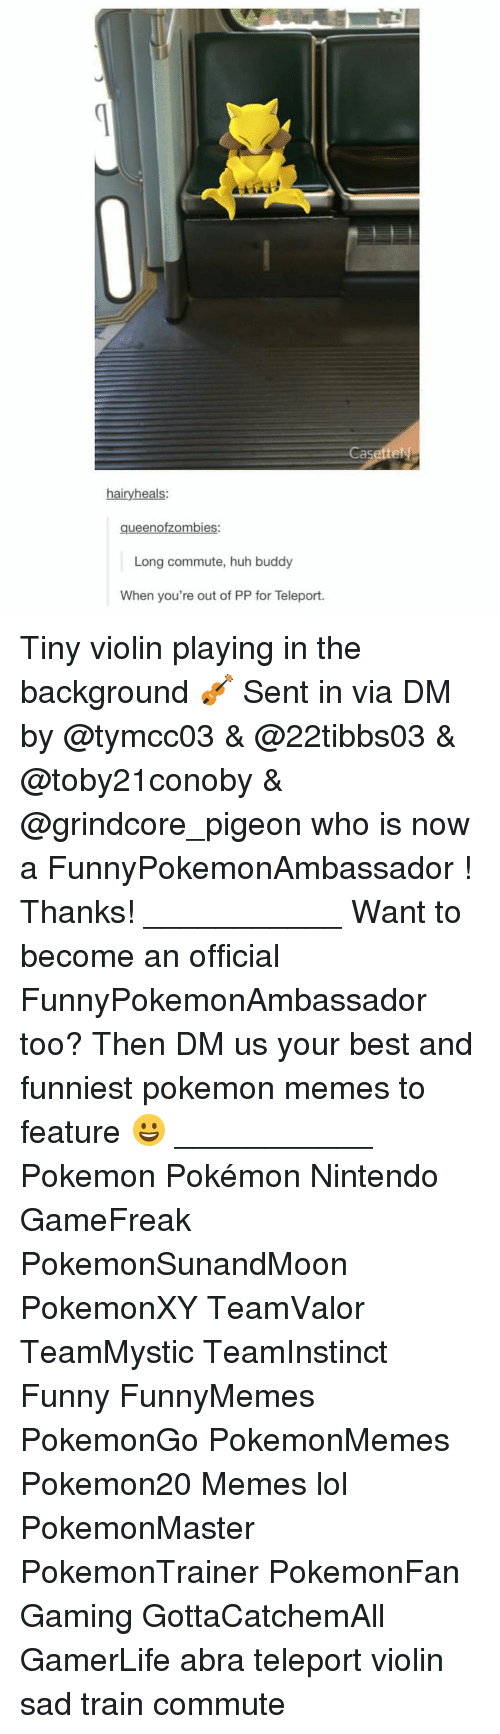 violins: hairy heals:  queenofzombies:  Long commute, huh buddy  When you're out of PP for Teleport.  asetteN Tiny violin playing in the background 🎻 Sent in via DM by @tymcc03 & @22tibbs03 & @toby21conoby & @grindcore_pigeon who is now a FunnyPokemonAmbassador ! Thanks! ___________ Want to become an official FunnyPokemonAmbassador too? Then DM us your best and funniest pokemon memes to feature 😀 ___________ Pokemon Pokémon Nintendo GameFreak PokemonSunandMoon PokemonXY TeamValor TeamMystic TeamInstinct Funny FunnyMemes PokemonGo PokemonMemes Pokemon20 Memes lol ポケットモンスター PokemonMaster PokemonTrainer PokemonFan Gaming GottaCatchemAll GamerLife abra teleport violin sad train commute